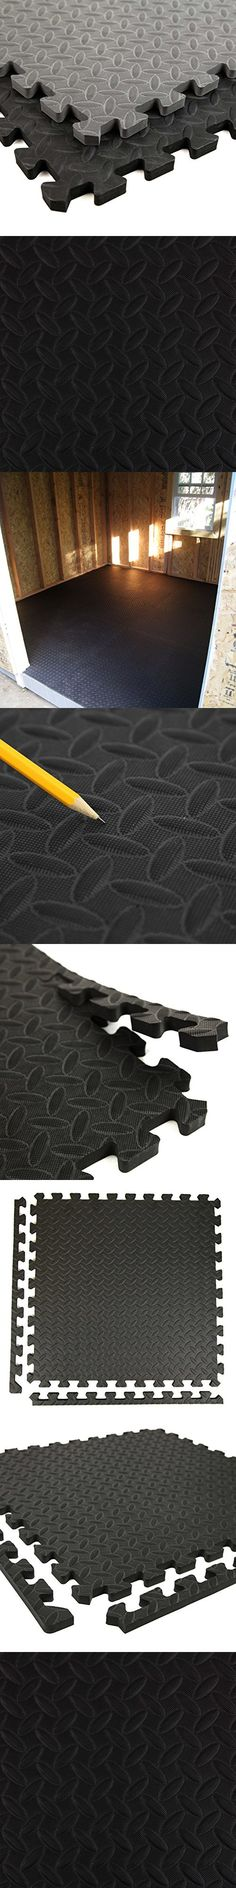 Incstores Diamond Soft Extra Thick Anti Fatigue Interlocking Foam Tiles (12 Pack, Black) - 2ft x 2ft Tiles Ideal for Laundry Room Flooring, Kitchen Mats, Exercise Mats, Garage Mats and More